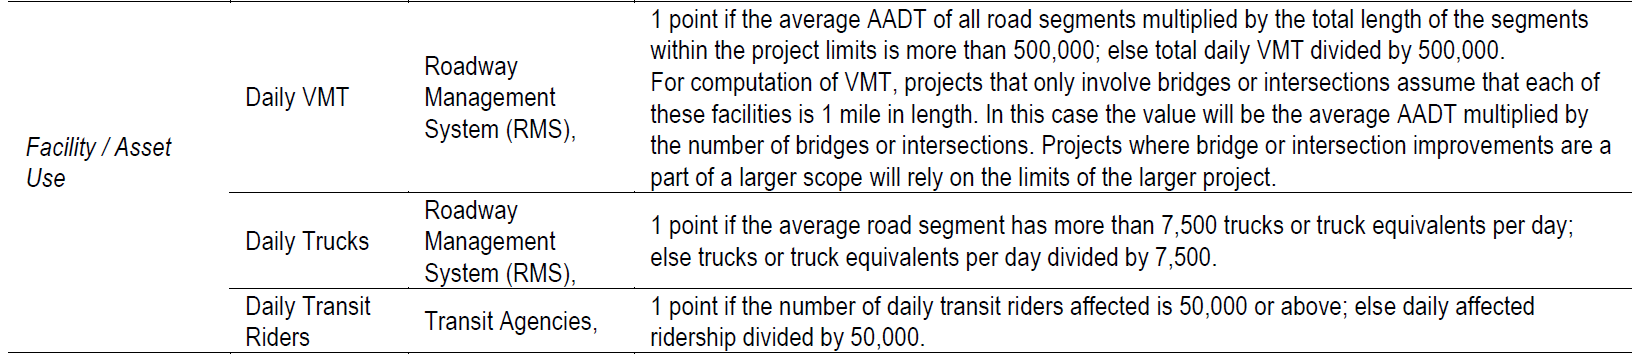 Table showing Facility/Asset Use criteria: Daily VMT, Daily Trucks, and Daily Transit Riders. Each uses the Roadway Management System (RMS) with the exception of ridership, which is reported by transit agencies.